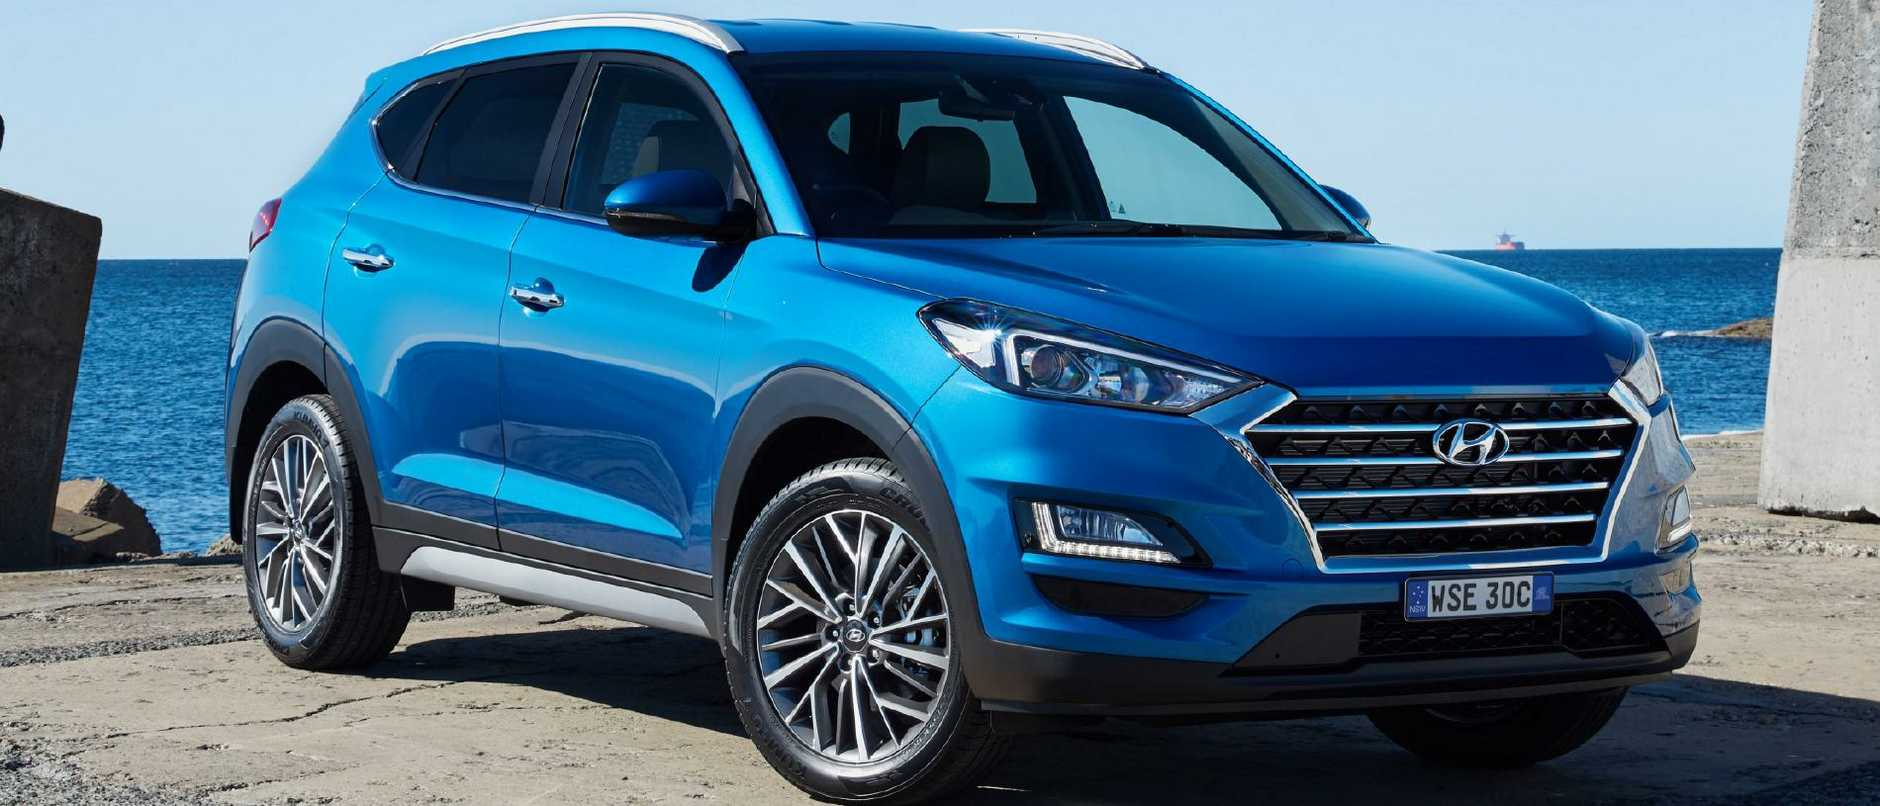 Supplied Cars Hyundai Tucson